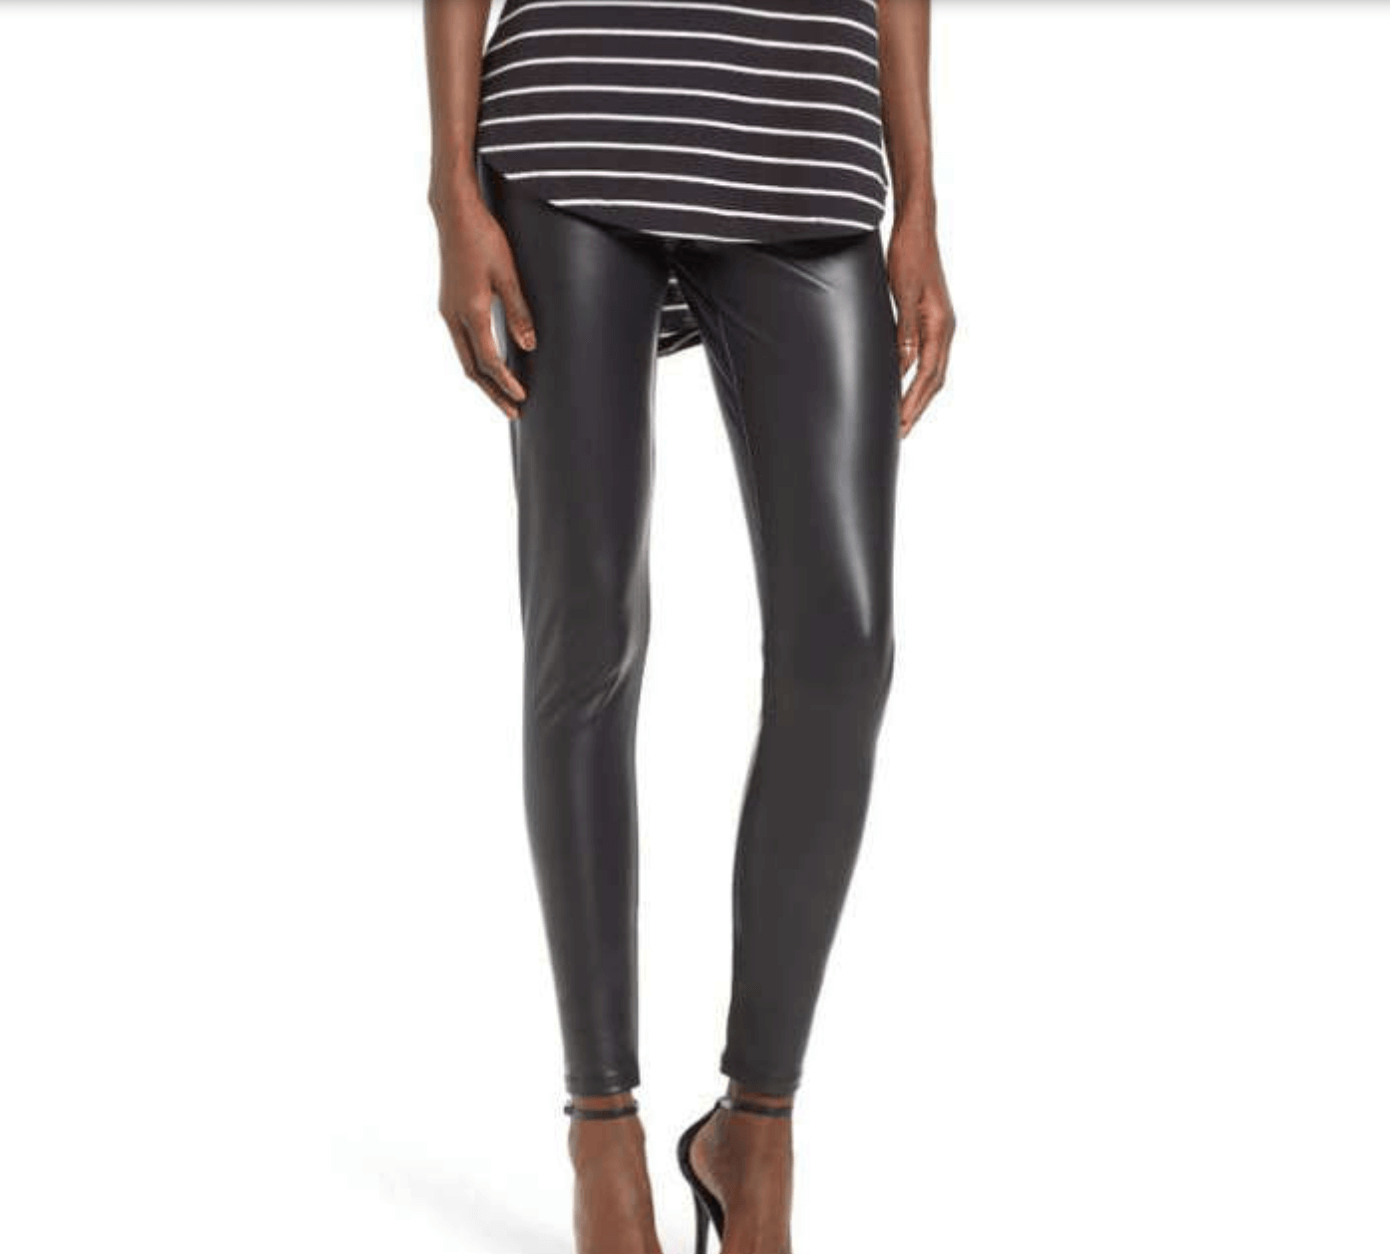 b20bd7659284ce 10 Best Faux Leather Leggings That Look Just Like The Real Thing